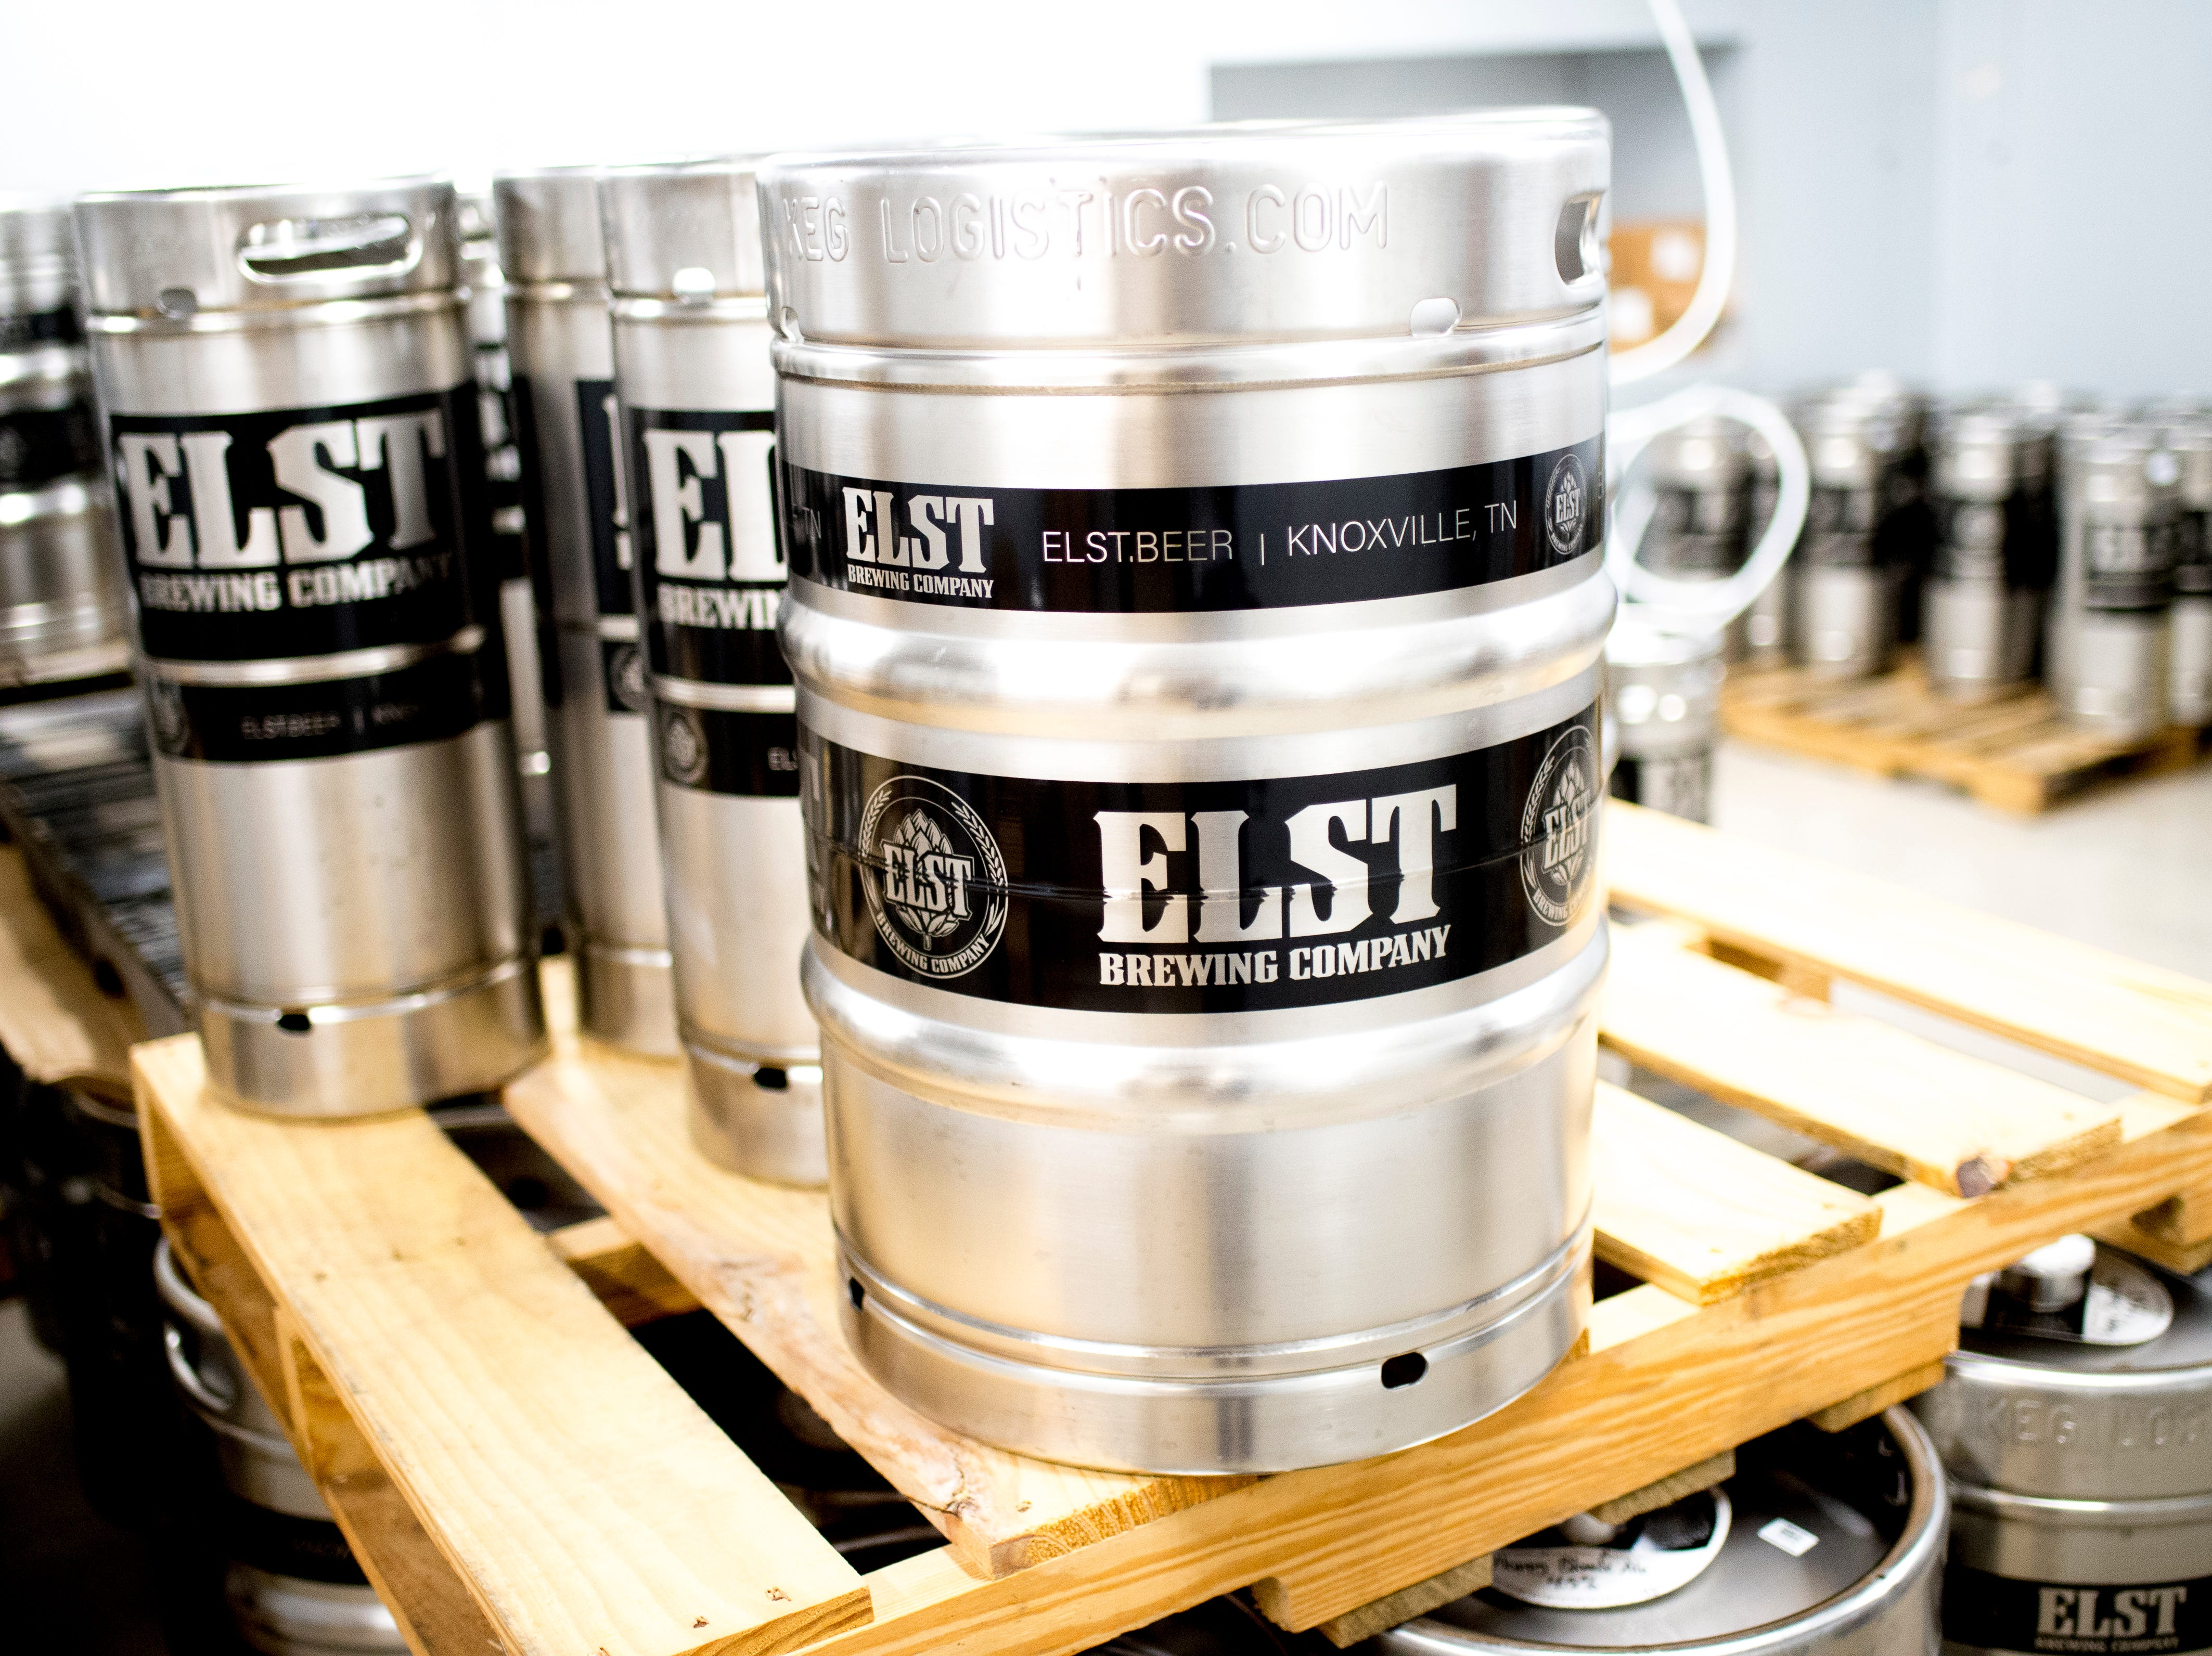 A keg of Elst Beer in the cooler at Elst Brewing Company on 2417 N Central St. in Knoxville, Tennessee on Thursday, November 1, 2018. Elst plans to open its door beginning next year.